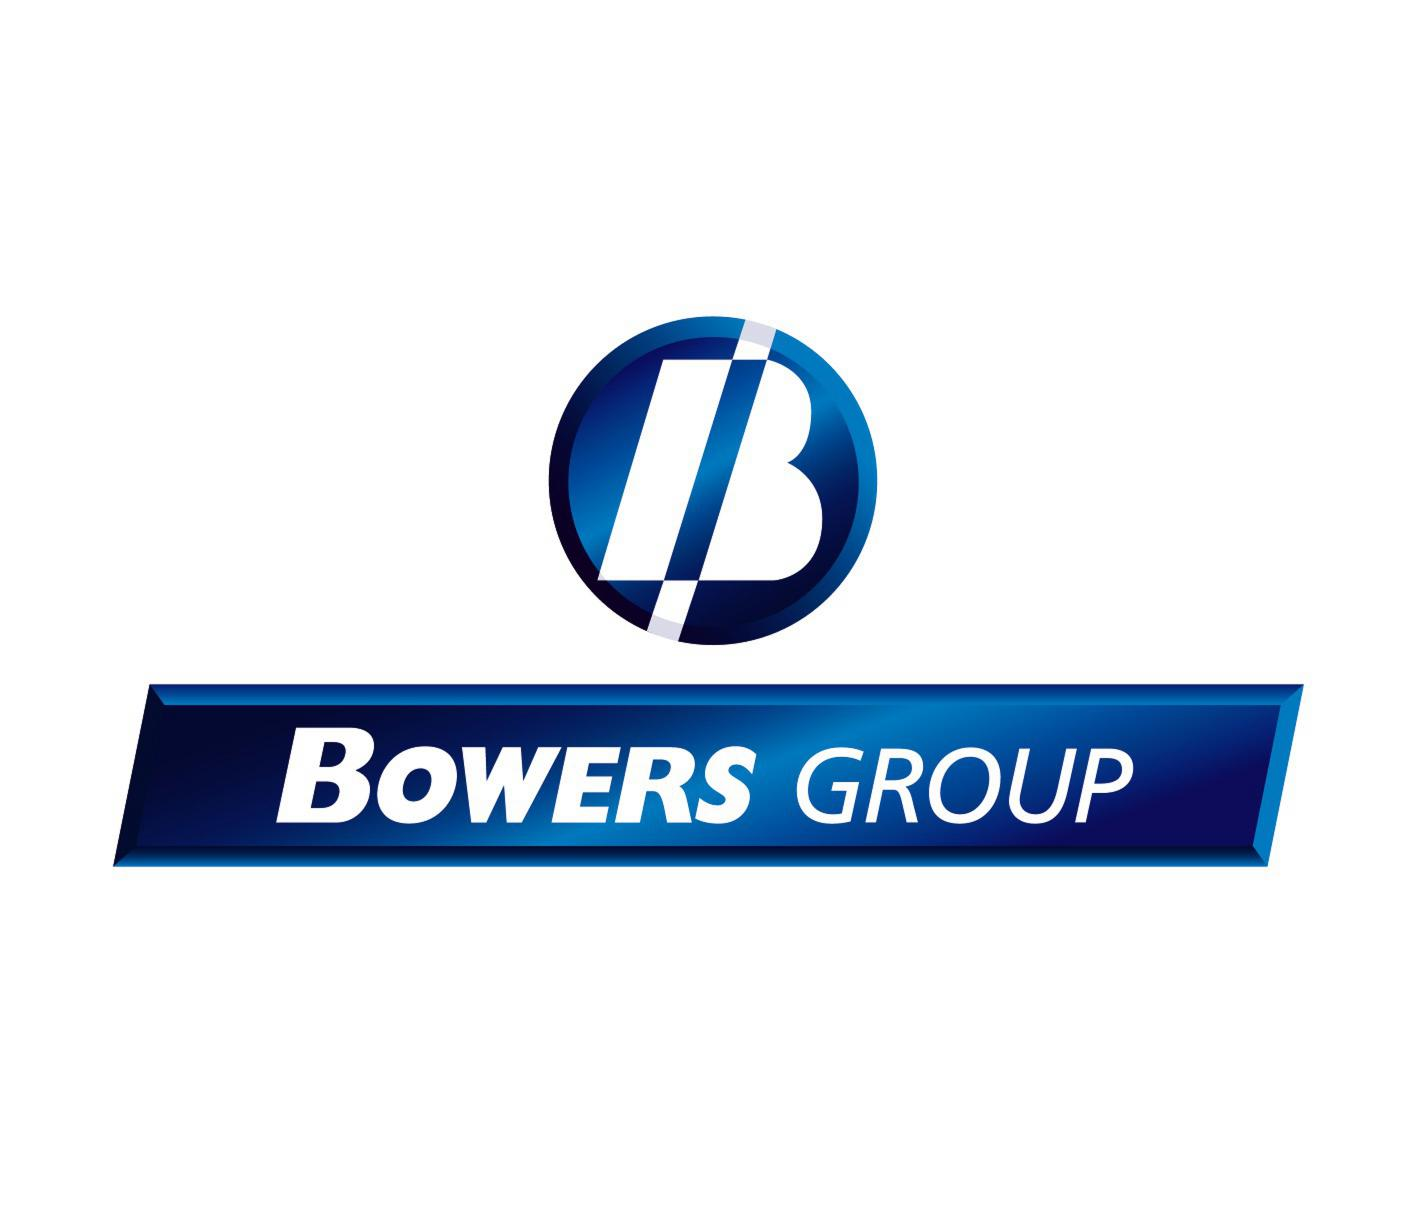 BOWERS GROUP LIMITED